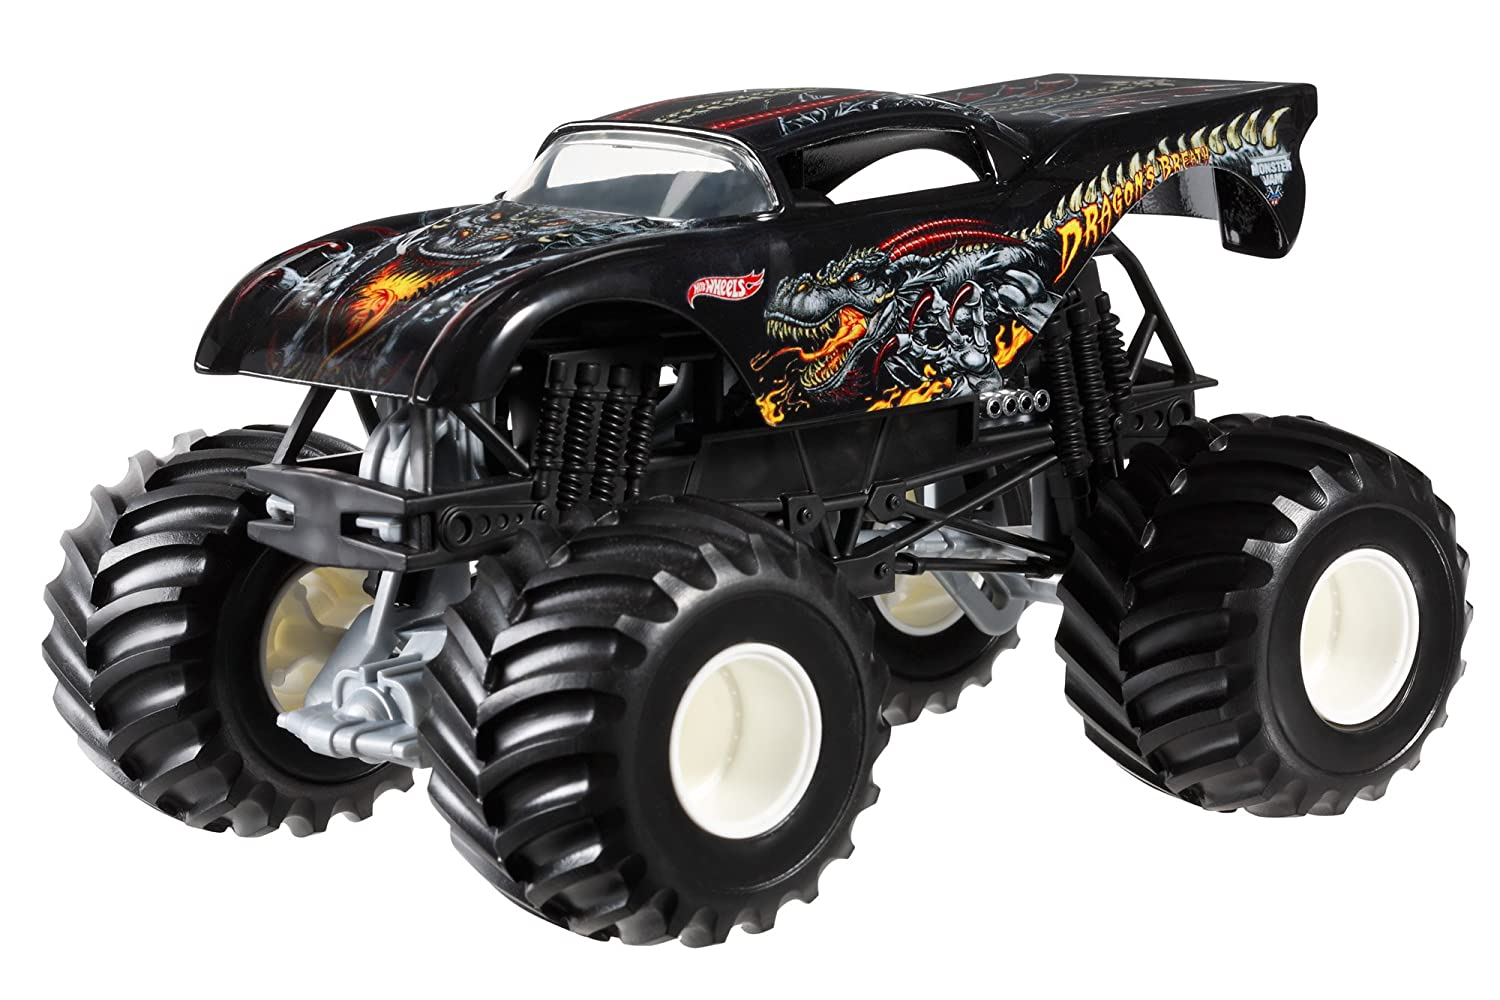 Mattel Hot Wheels Monster Jam Dragon's Breath Die-Cast Vehicle, 1:24 Scale at Sears.com